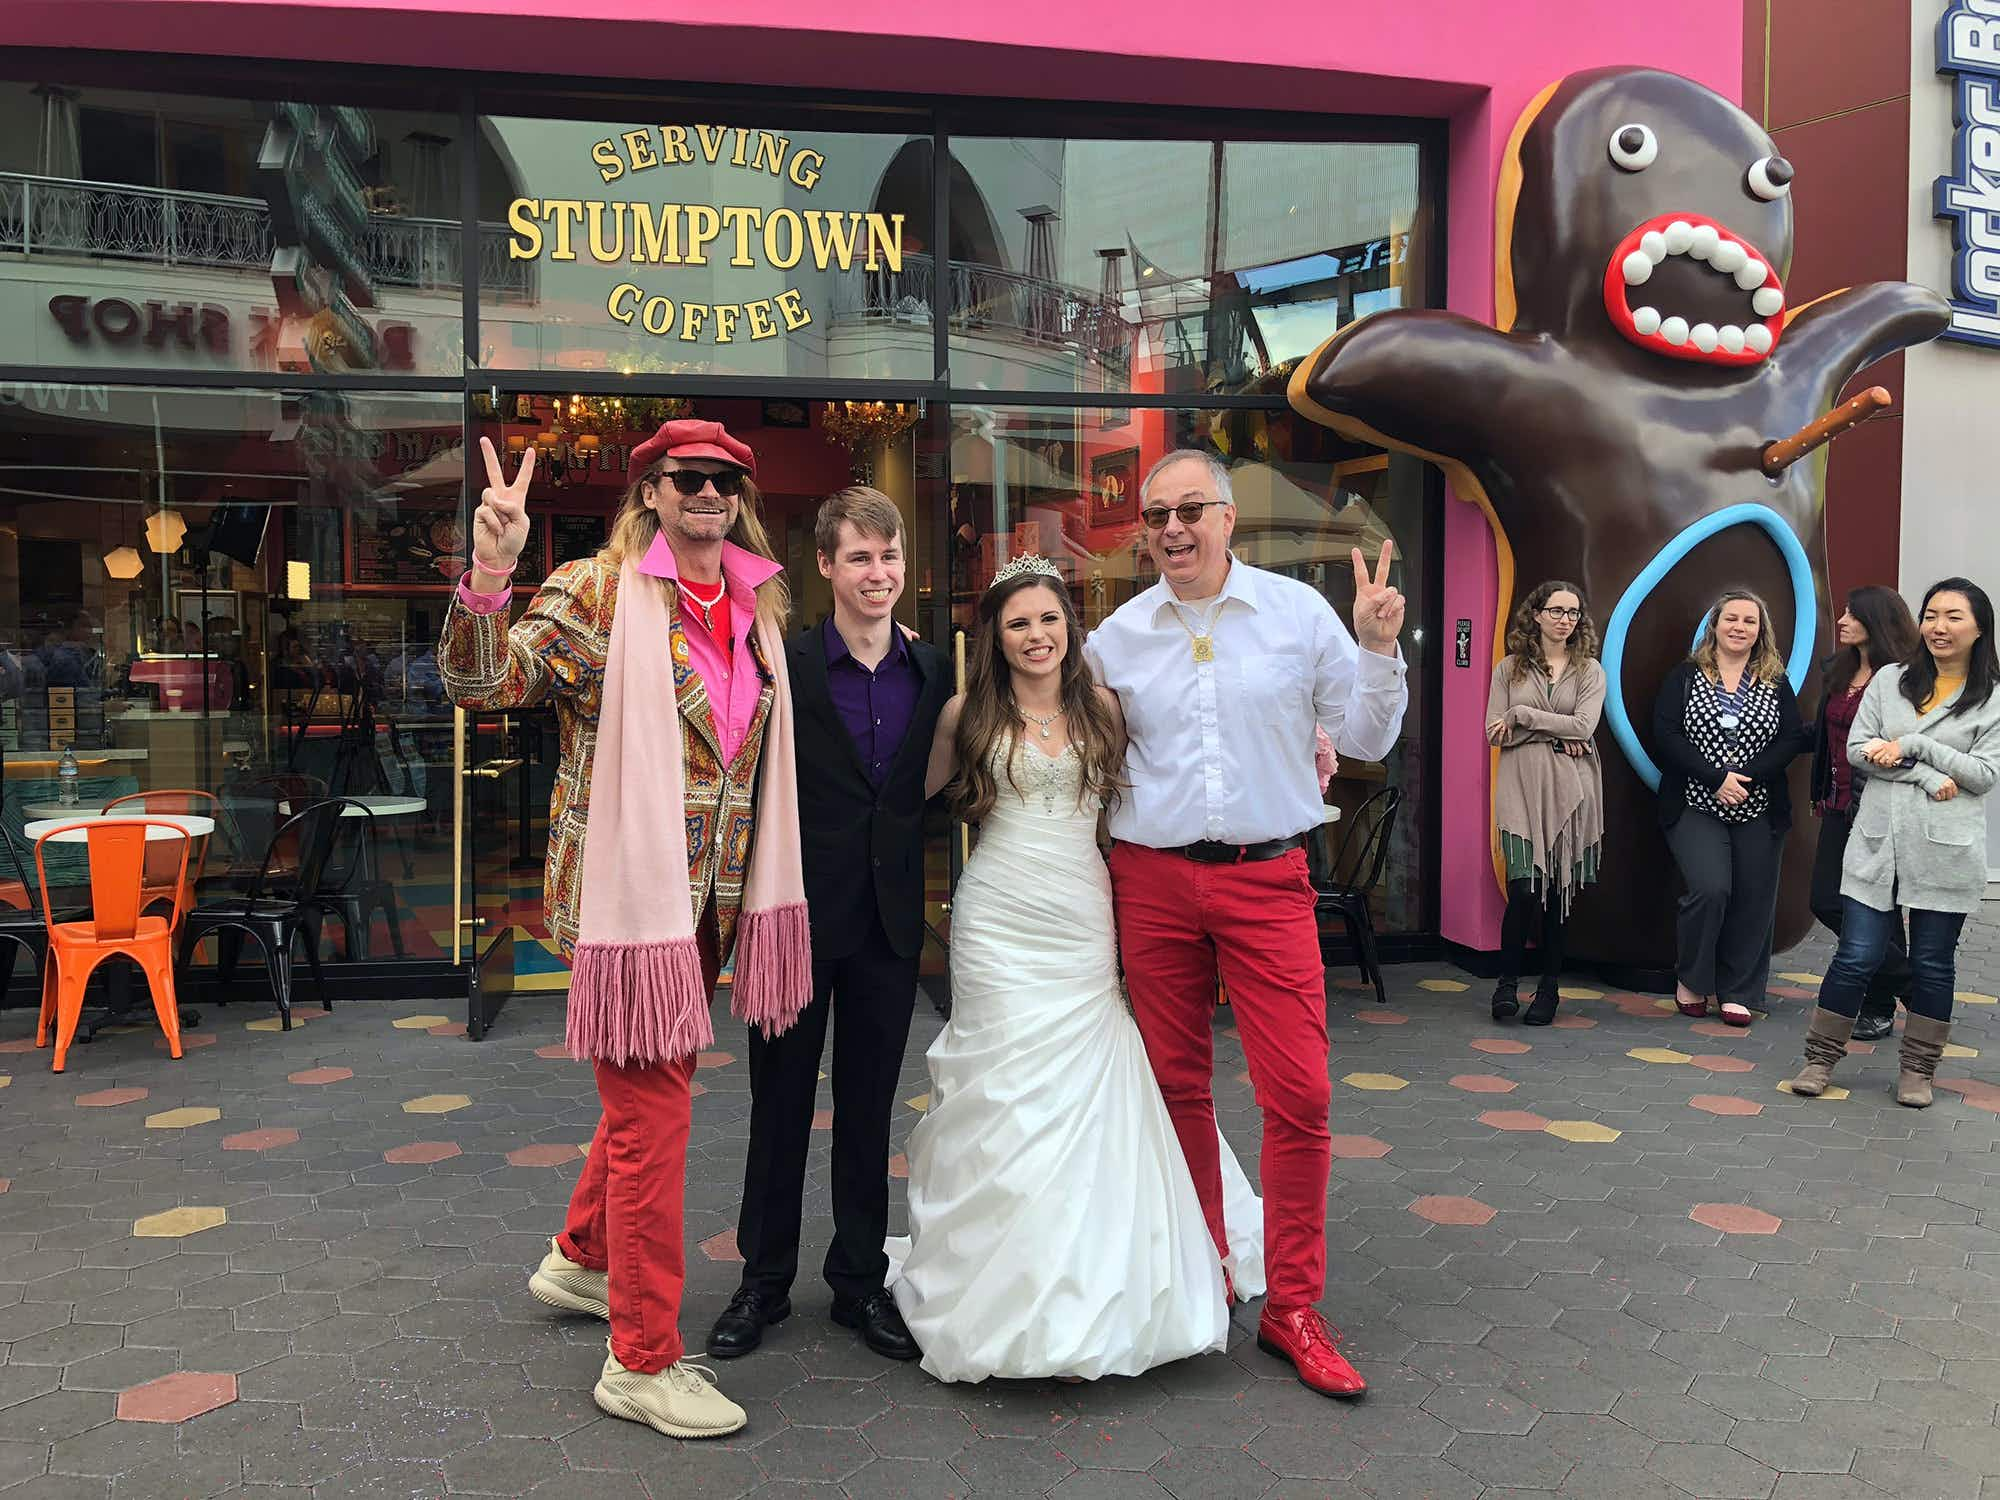 You can get married inside this Universal Studios all-pink doughnut shop